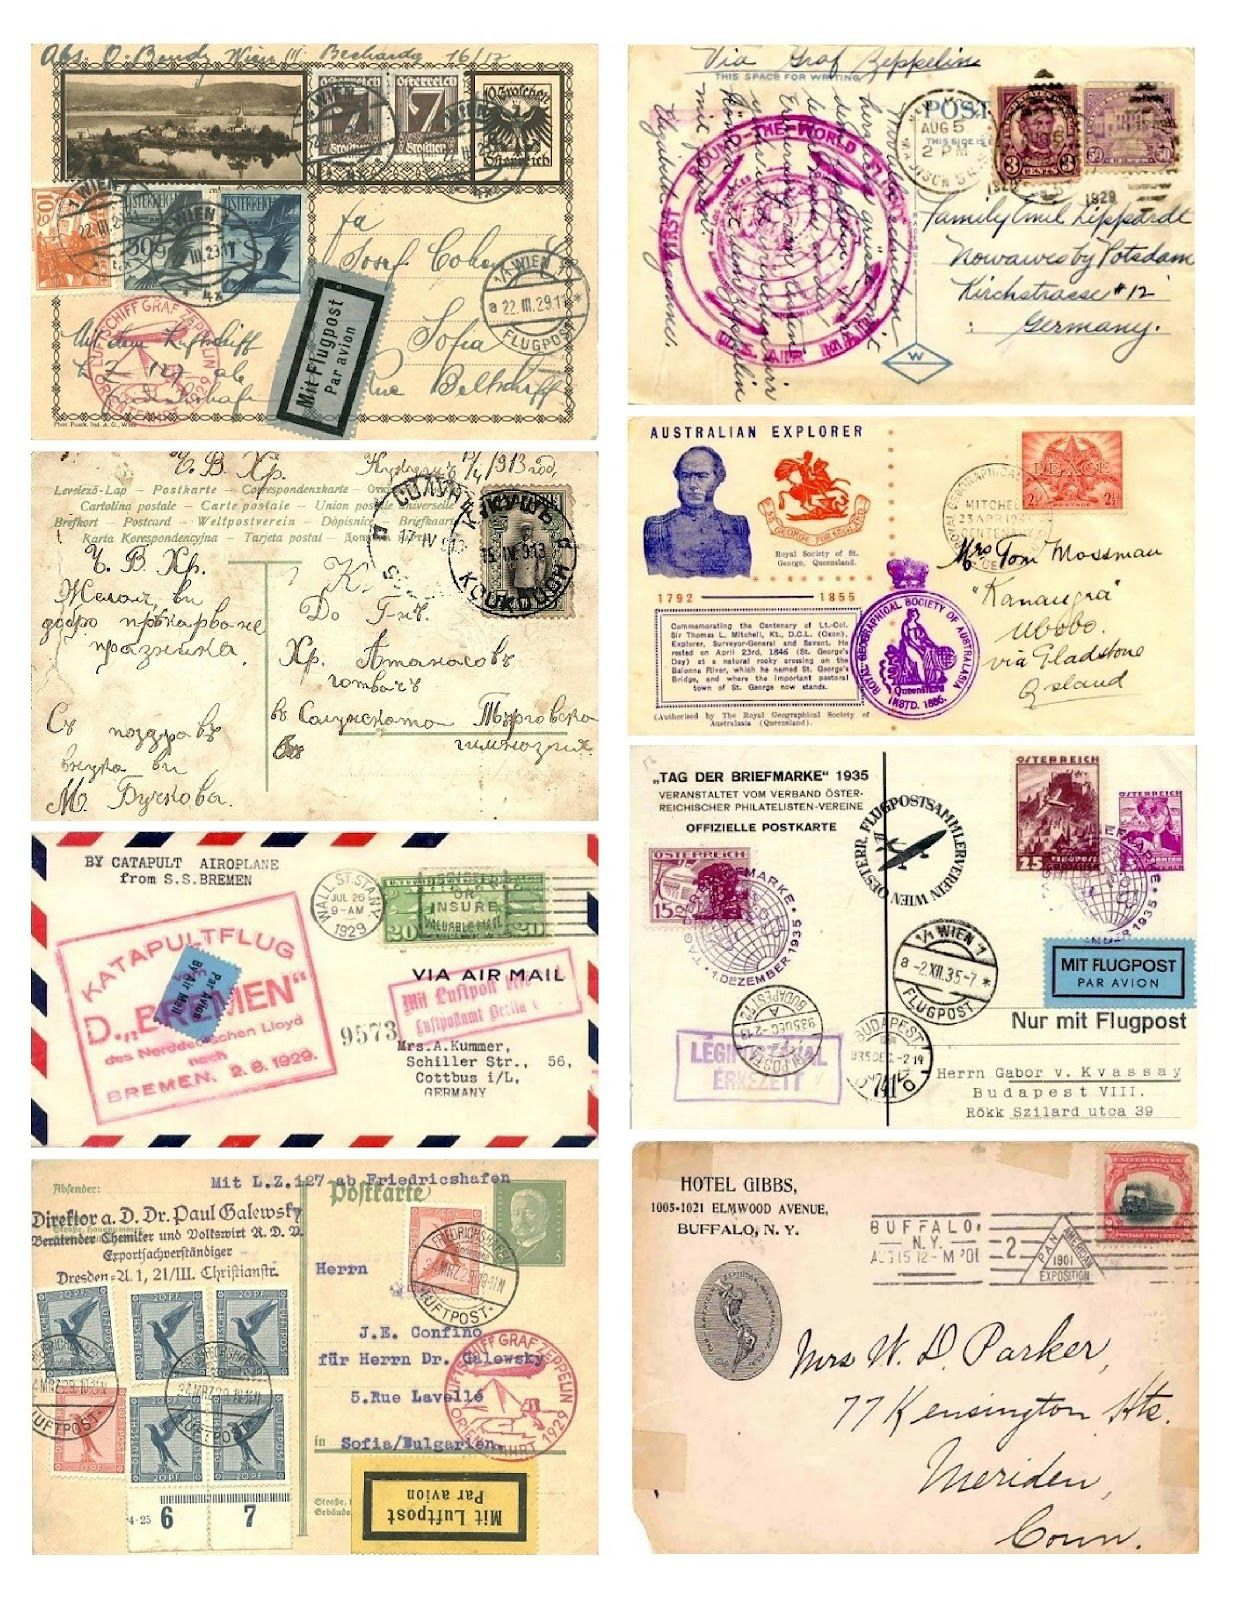 Free Vintage Digital Stamps Free Vintage Images Postal Collage Free Vintage Printables Vintage Postcards Digital Stamps